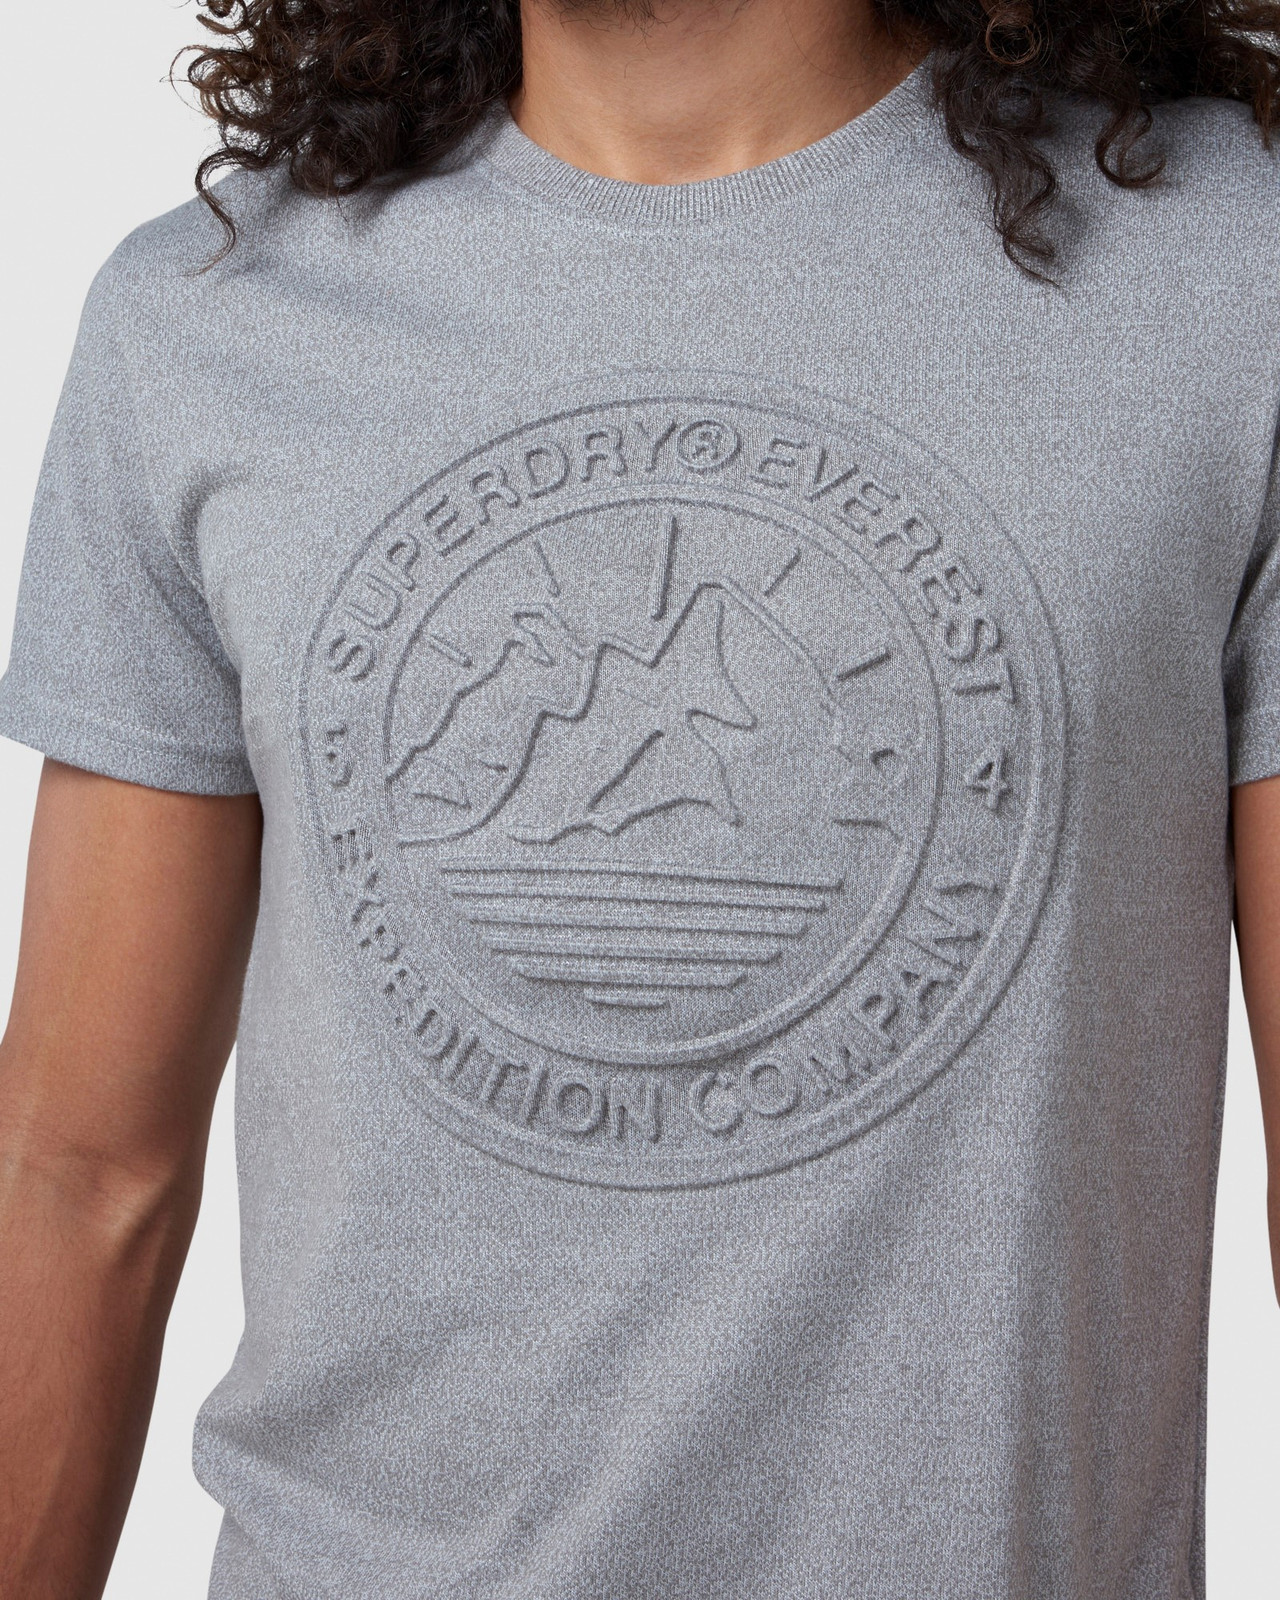 Superdry Mens EVEREST TEE Grey Printed T Shirts 4